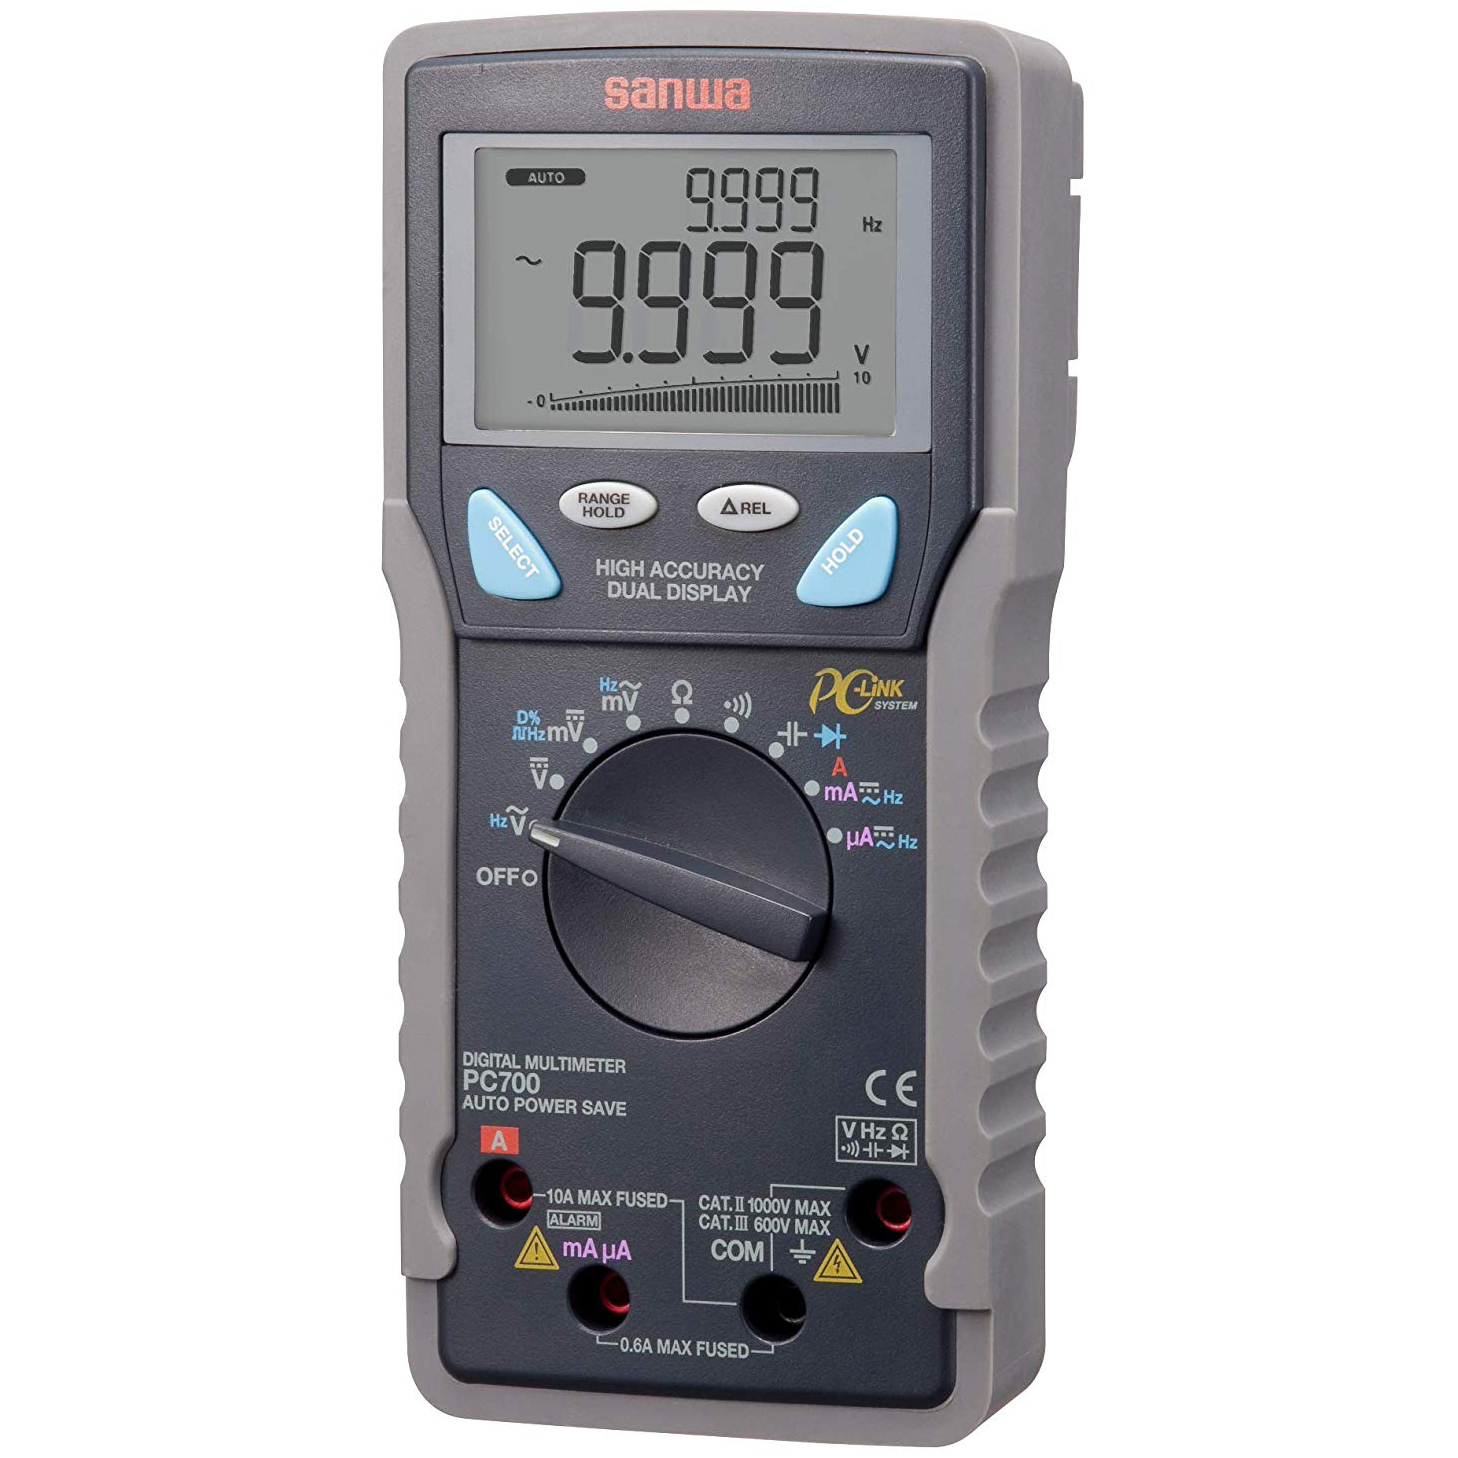 FMUSER SANWA PC700 Advanced Multimeter Digital Multimeter Pintar Penuh untuk Komunikasi PC